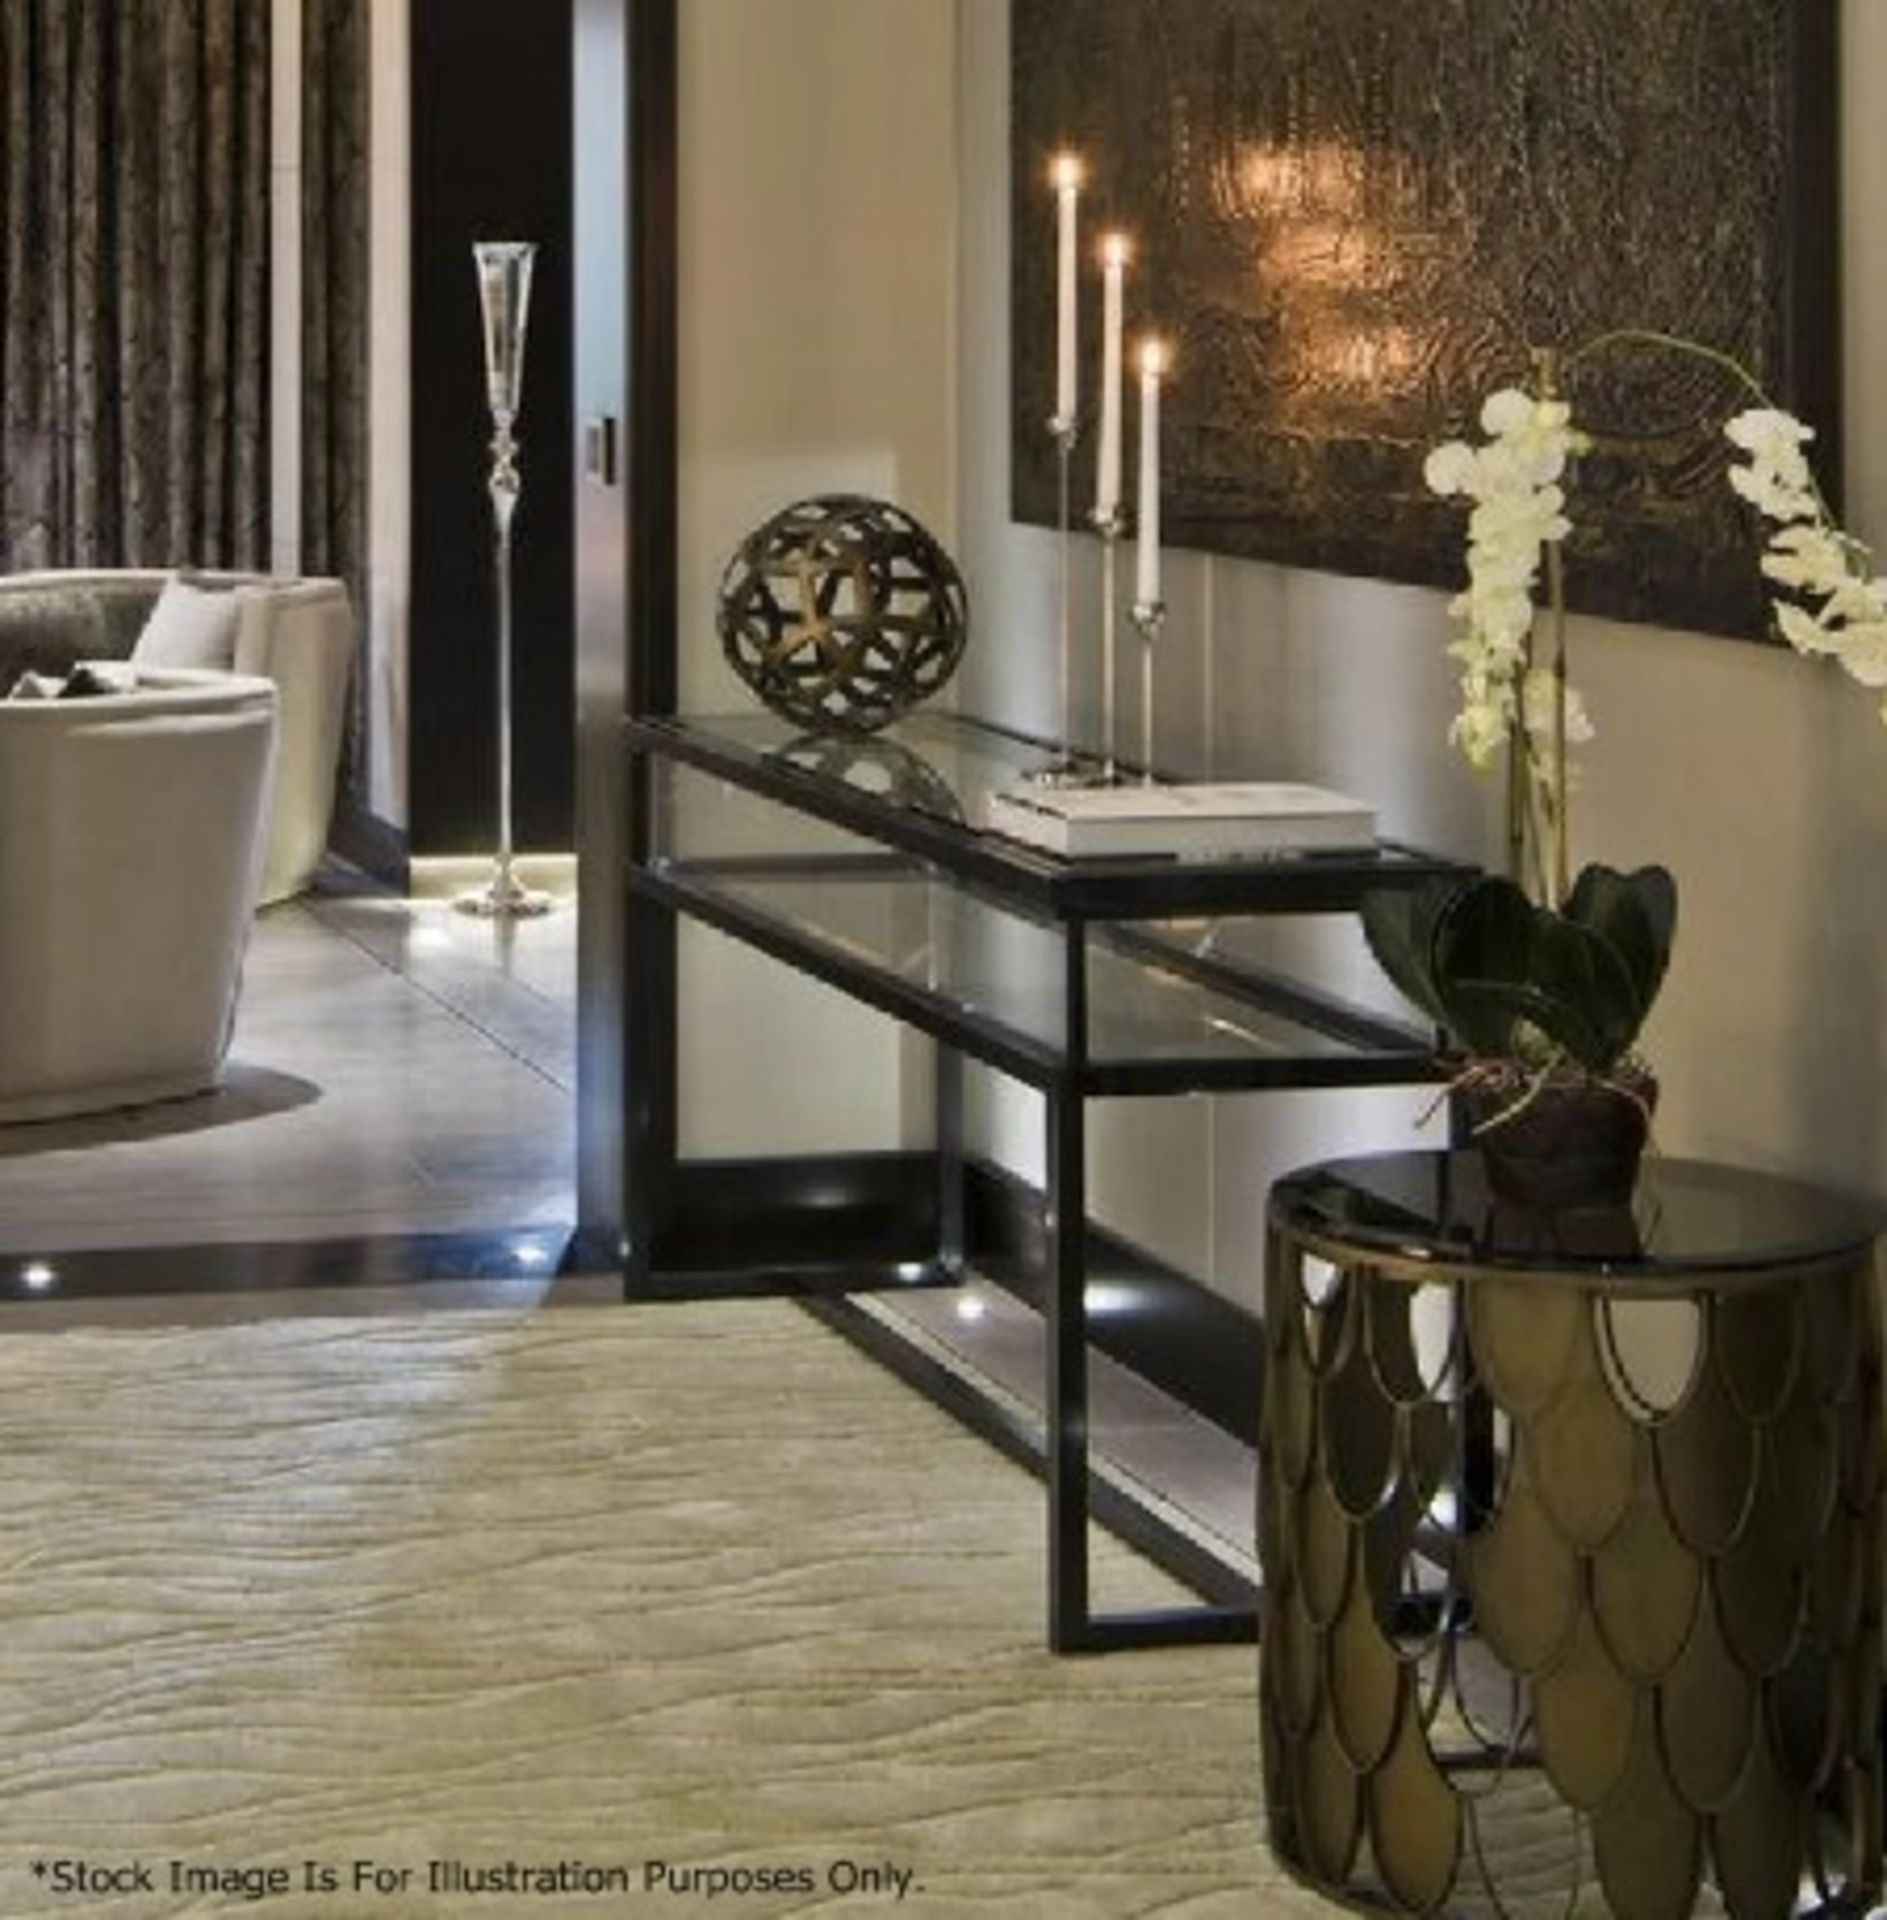 1 x EICHHOLTZ Luxury Console Table Harvey With A Sliding Glass Top And Steel Frame - RRP £3,839